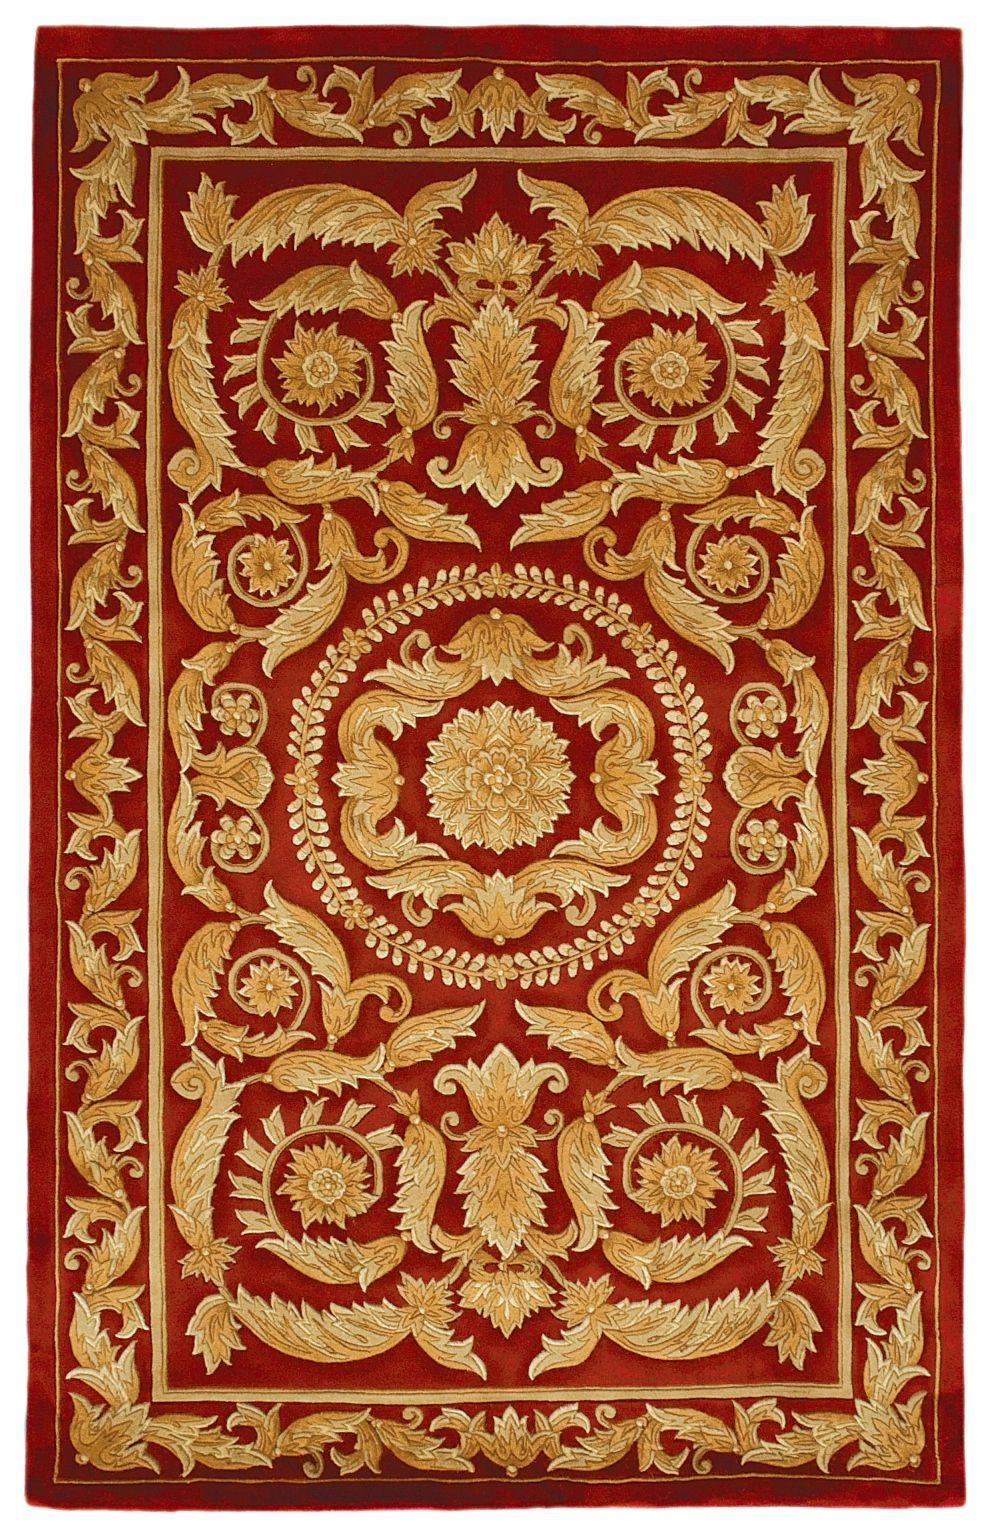 Red And Gold Chinese Inspired Design Rug